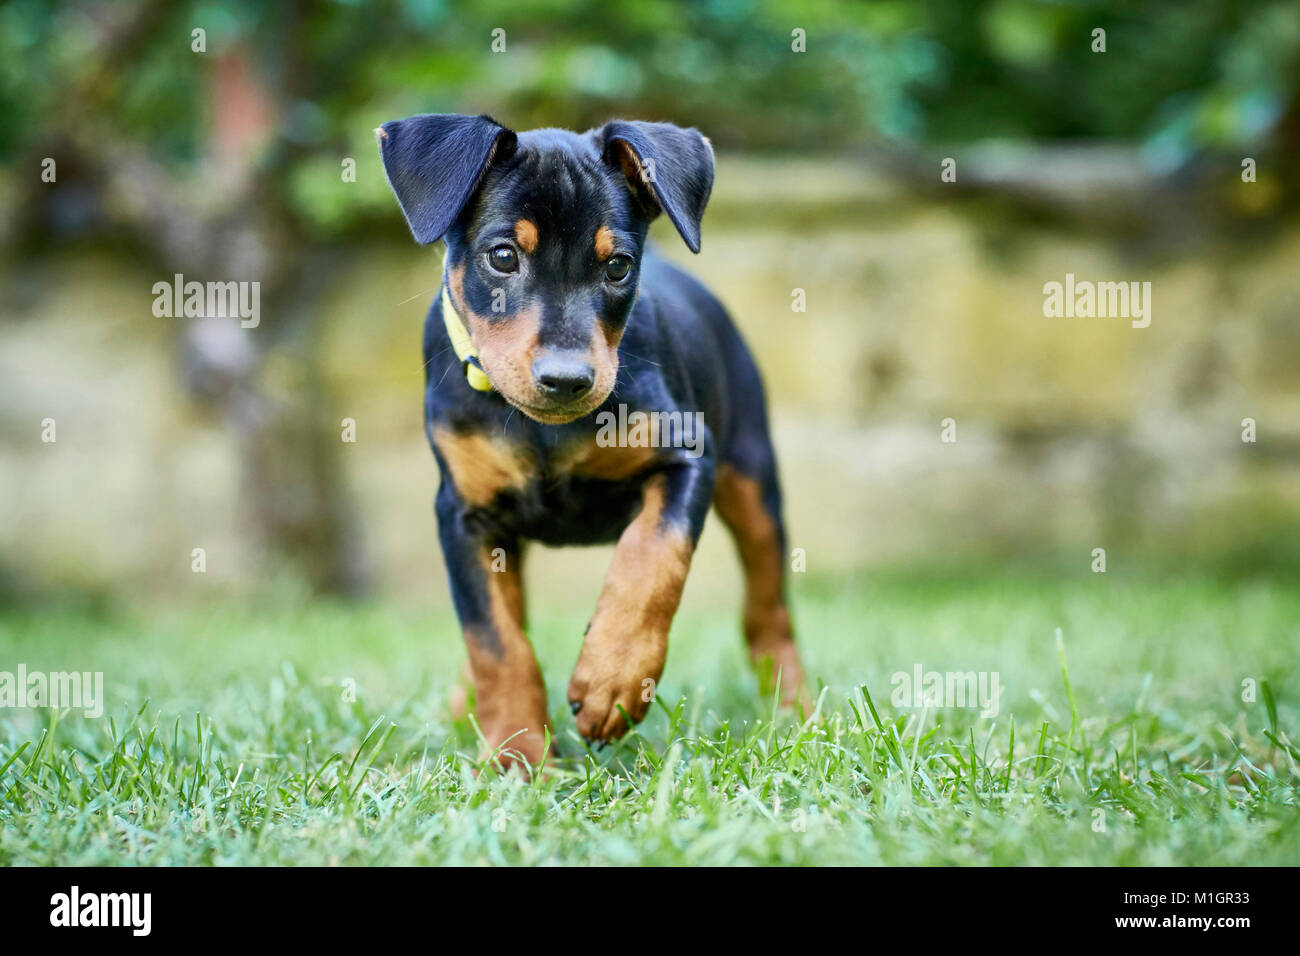 German Pinscher. Puppy walking on a lawn. Germany. - Stock Image